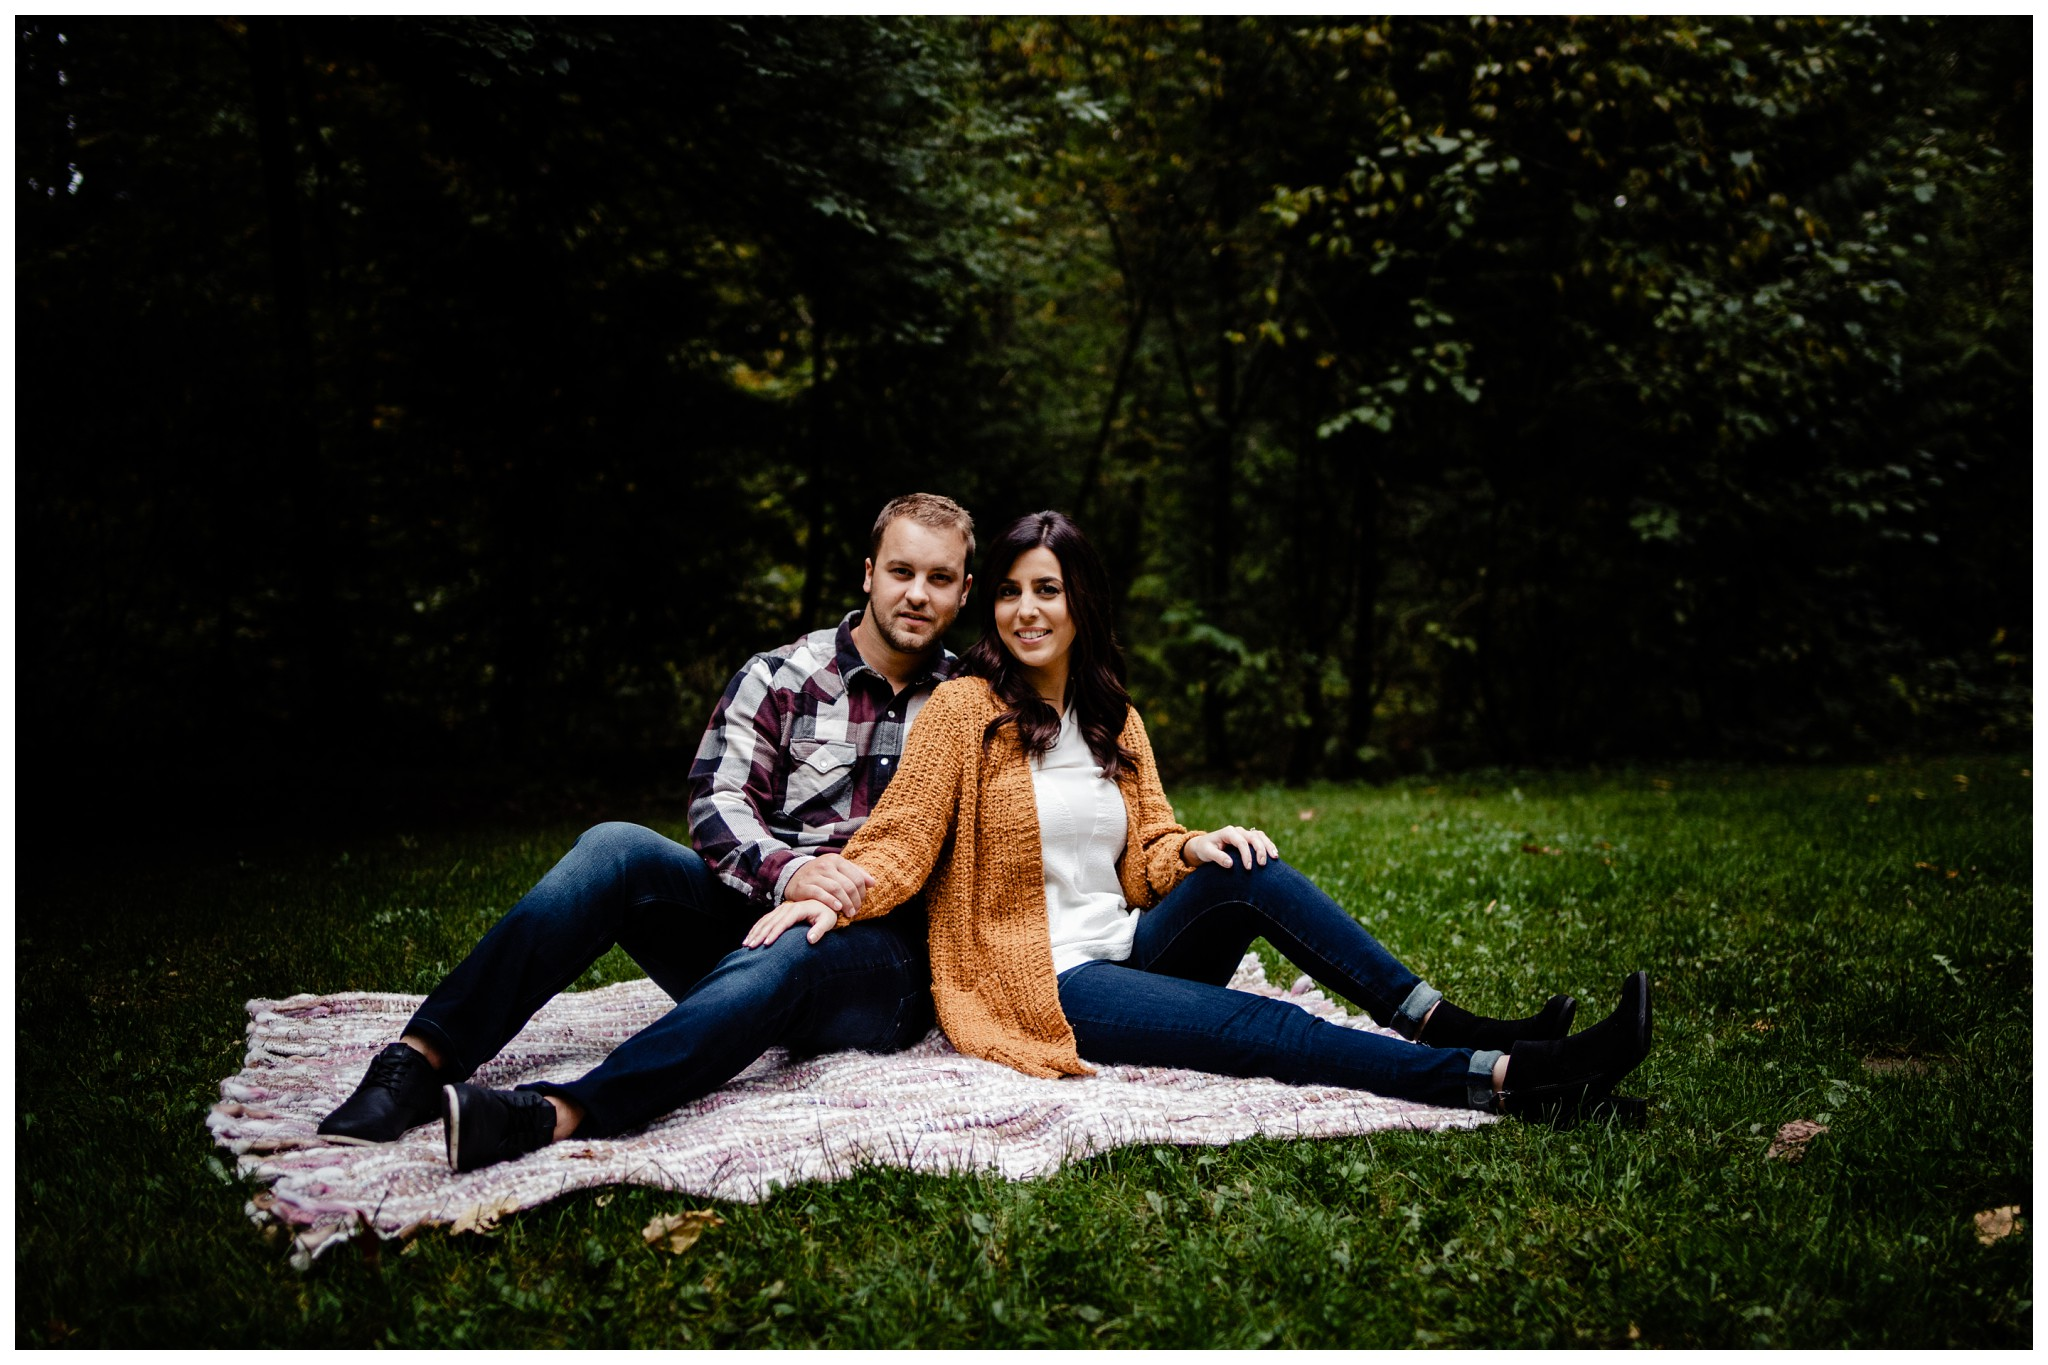 Williams Park Aldergrove Engagement Photographer Moody Fall Couple River Water Romantic Pose Yellow Leaves White Dress Dark_0030.jpg